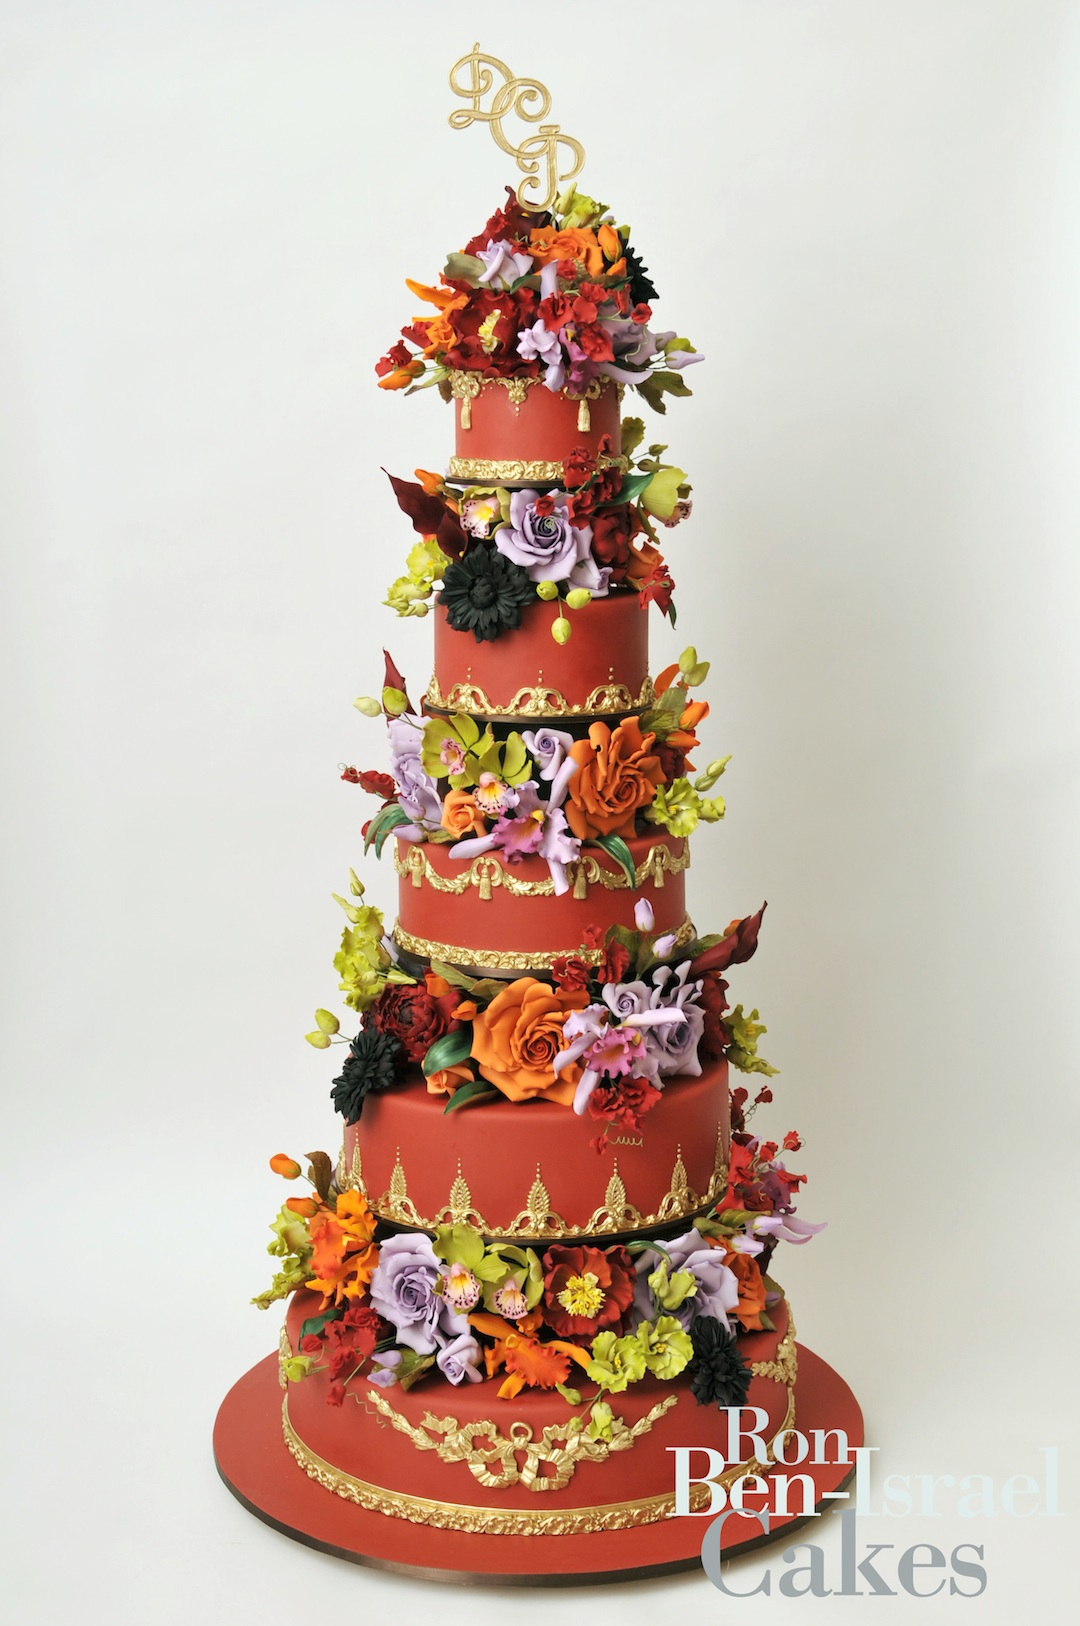 Wedding-cake-inspiration-ron-ben-isreal-wedding-cakes-terra-cotta-with-colorful-blooms.original